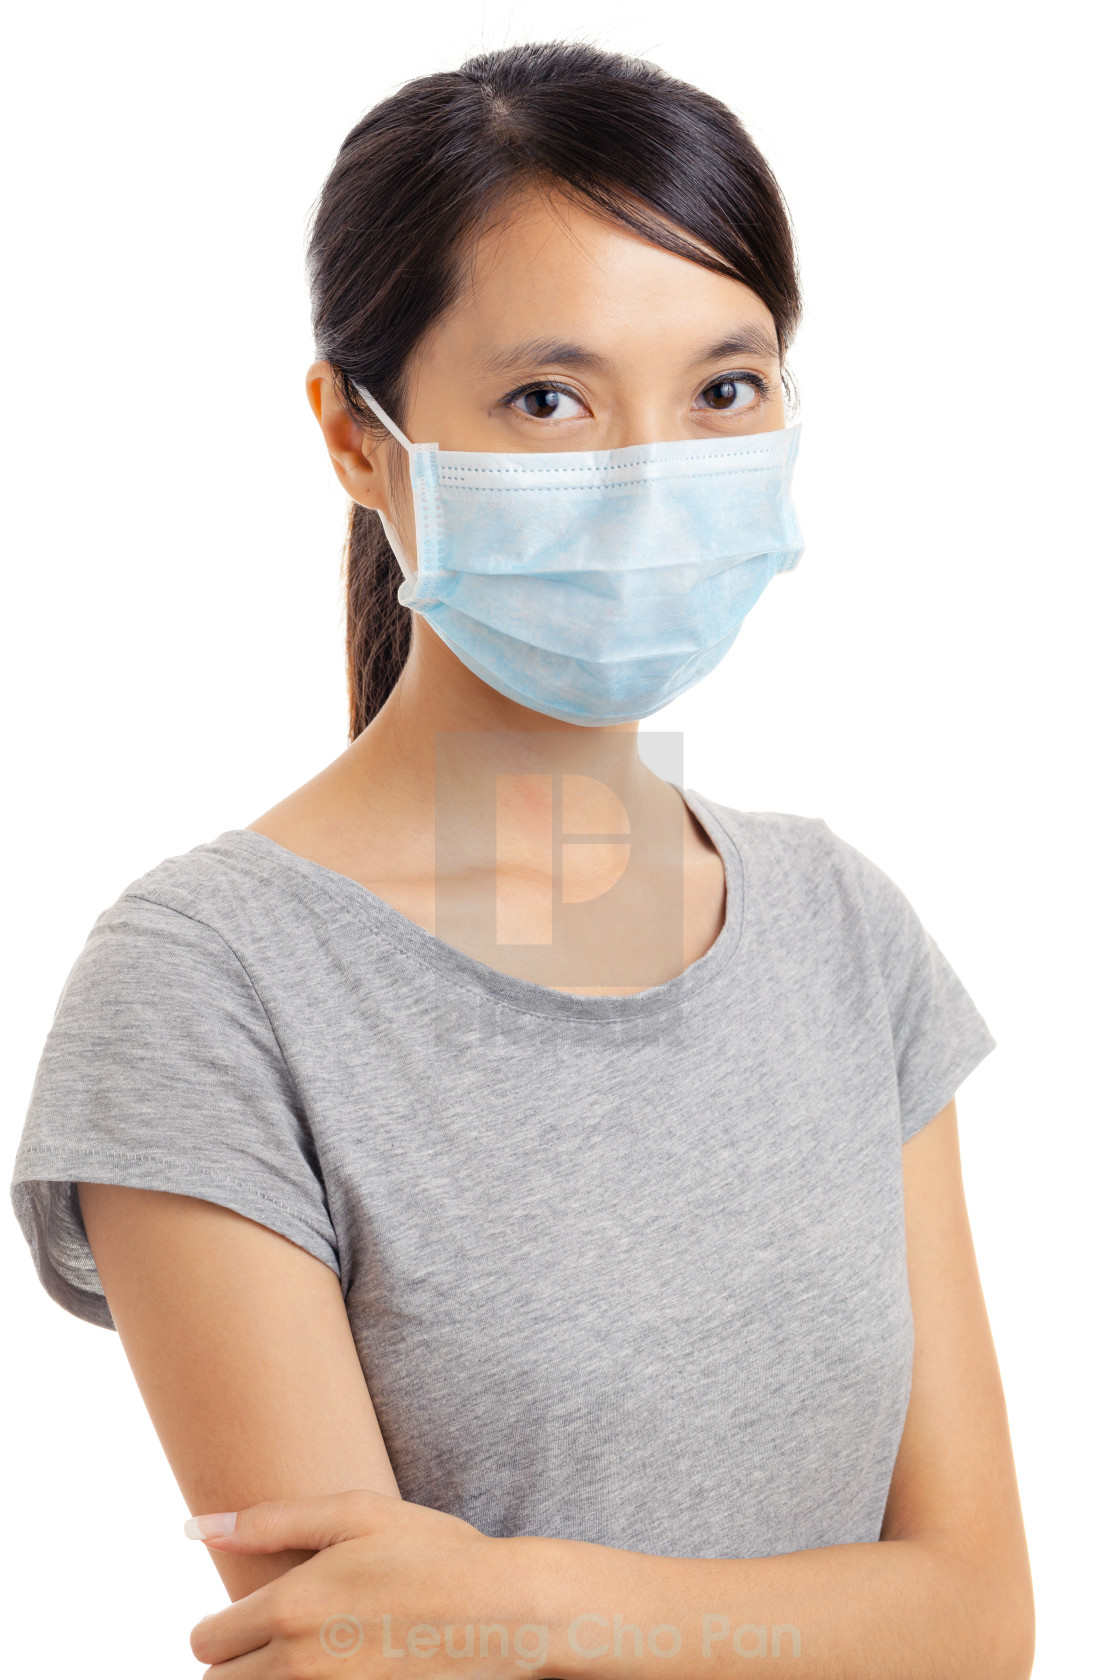 For Face Wear License Download Or Asian Mask 40 - �12 Print Woman